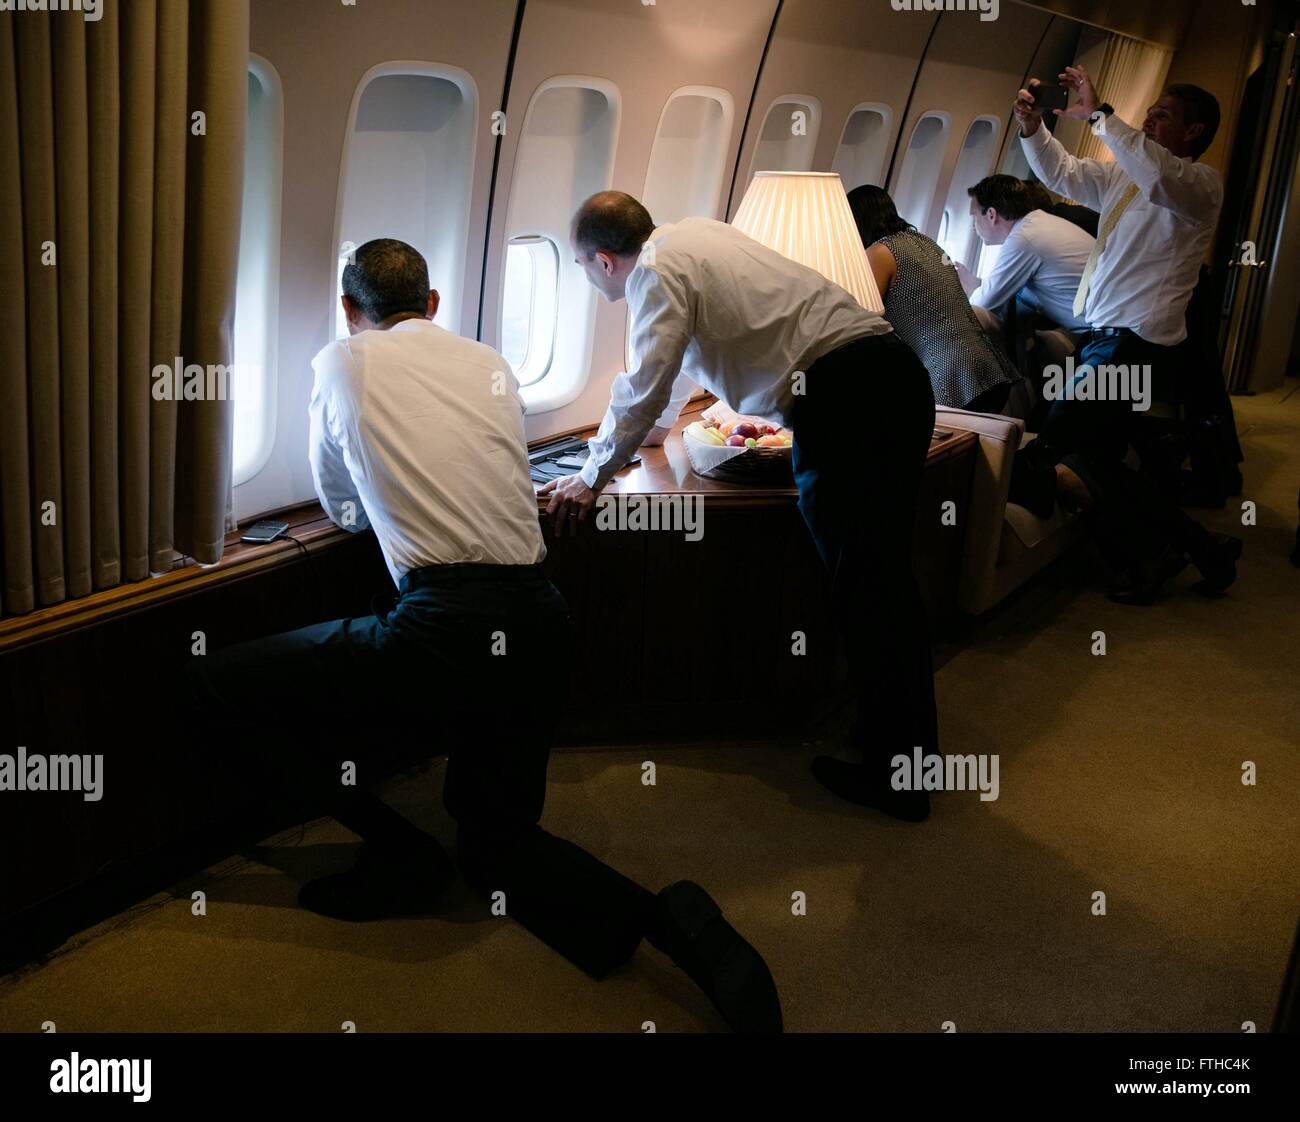 U.S President Barack Obama joins others in looking out the window of Air Force One on final approach to Jose Marti - Stock Image